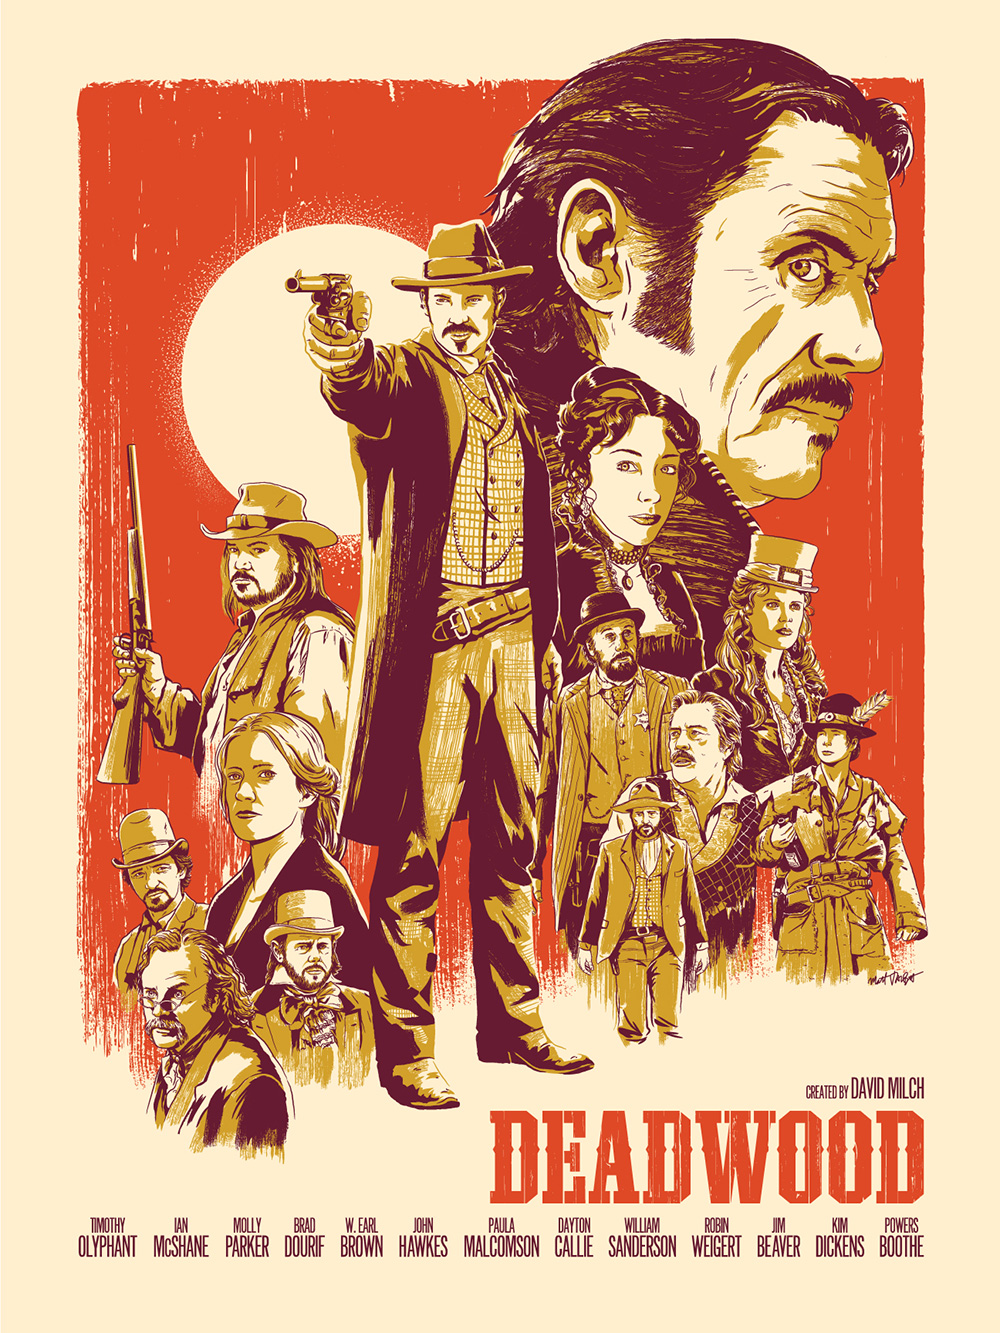 Deadwood print by Matt Talbot for Gallery 1988